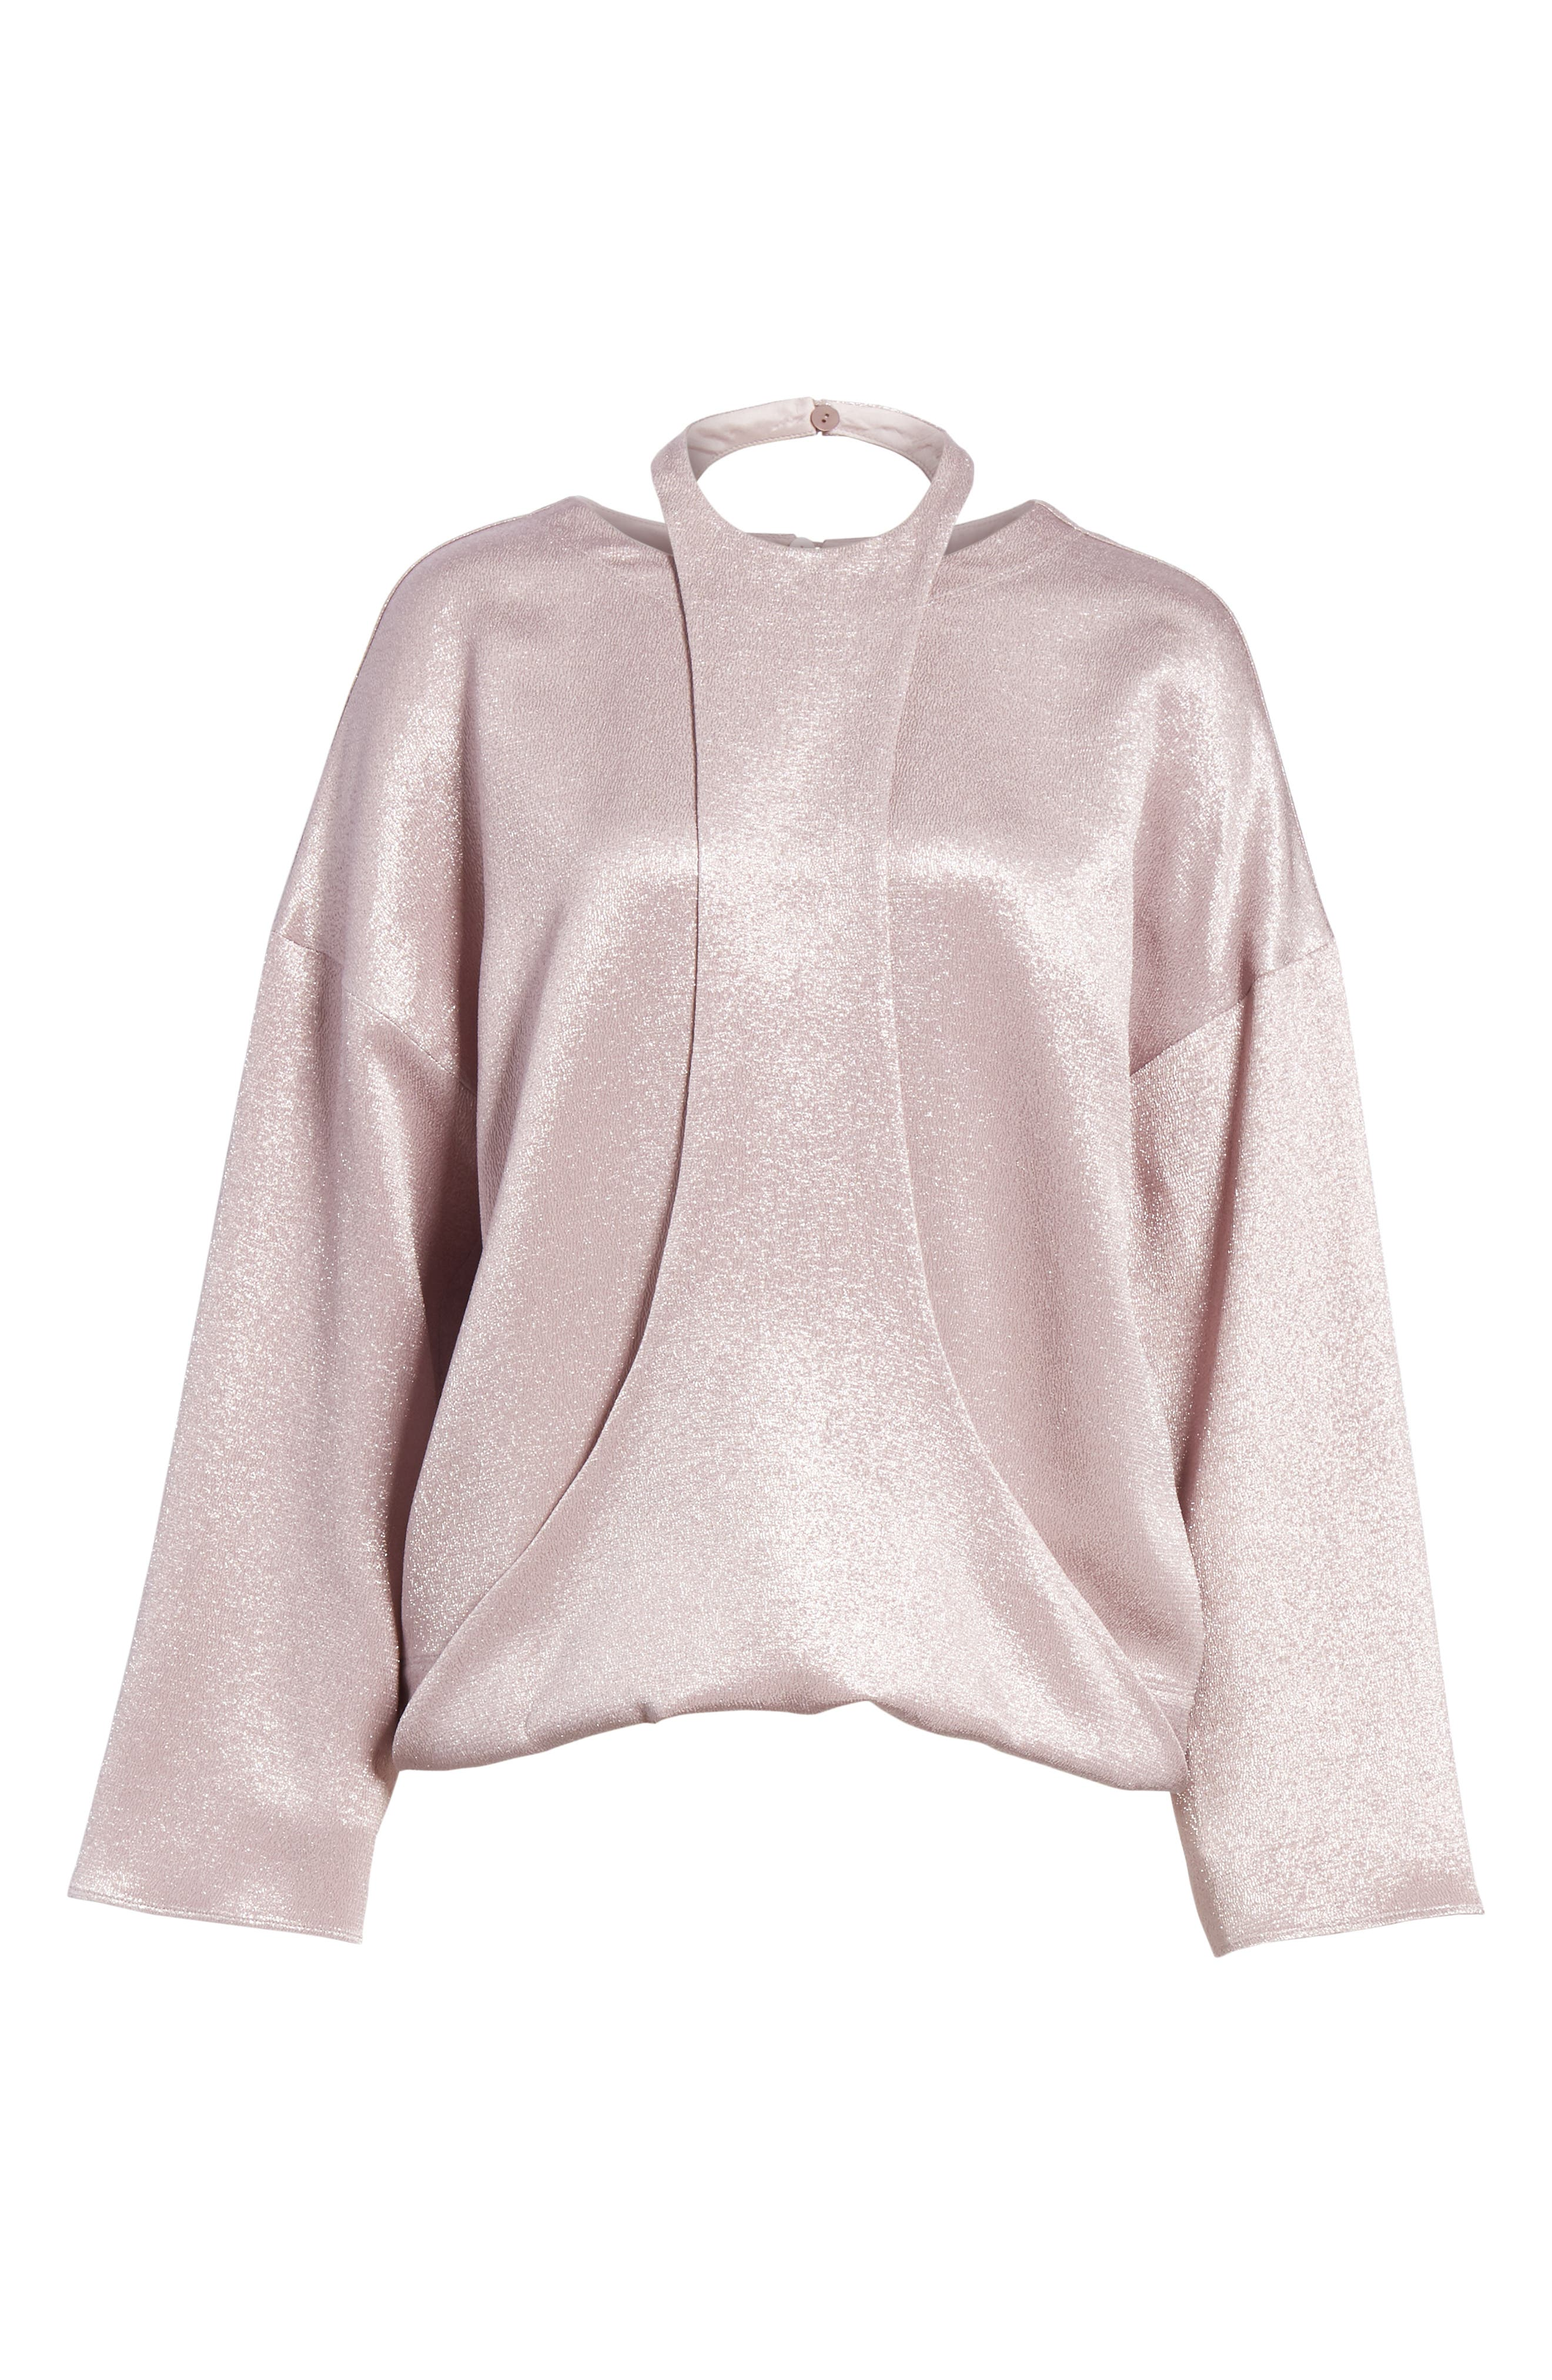 Harness Detail Hammered Lamé Top,                             Alternate thumbnail 6, color,                             650